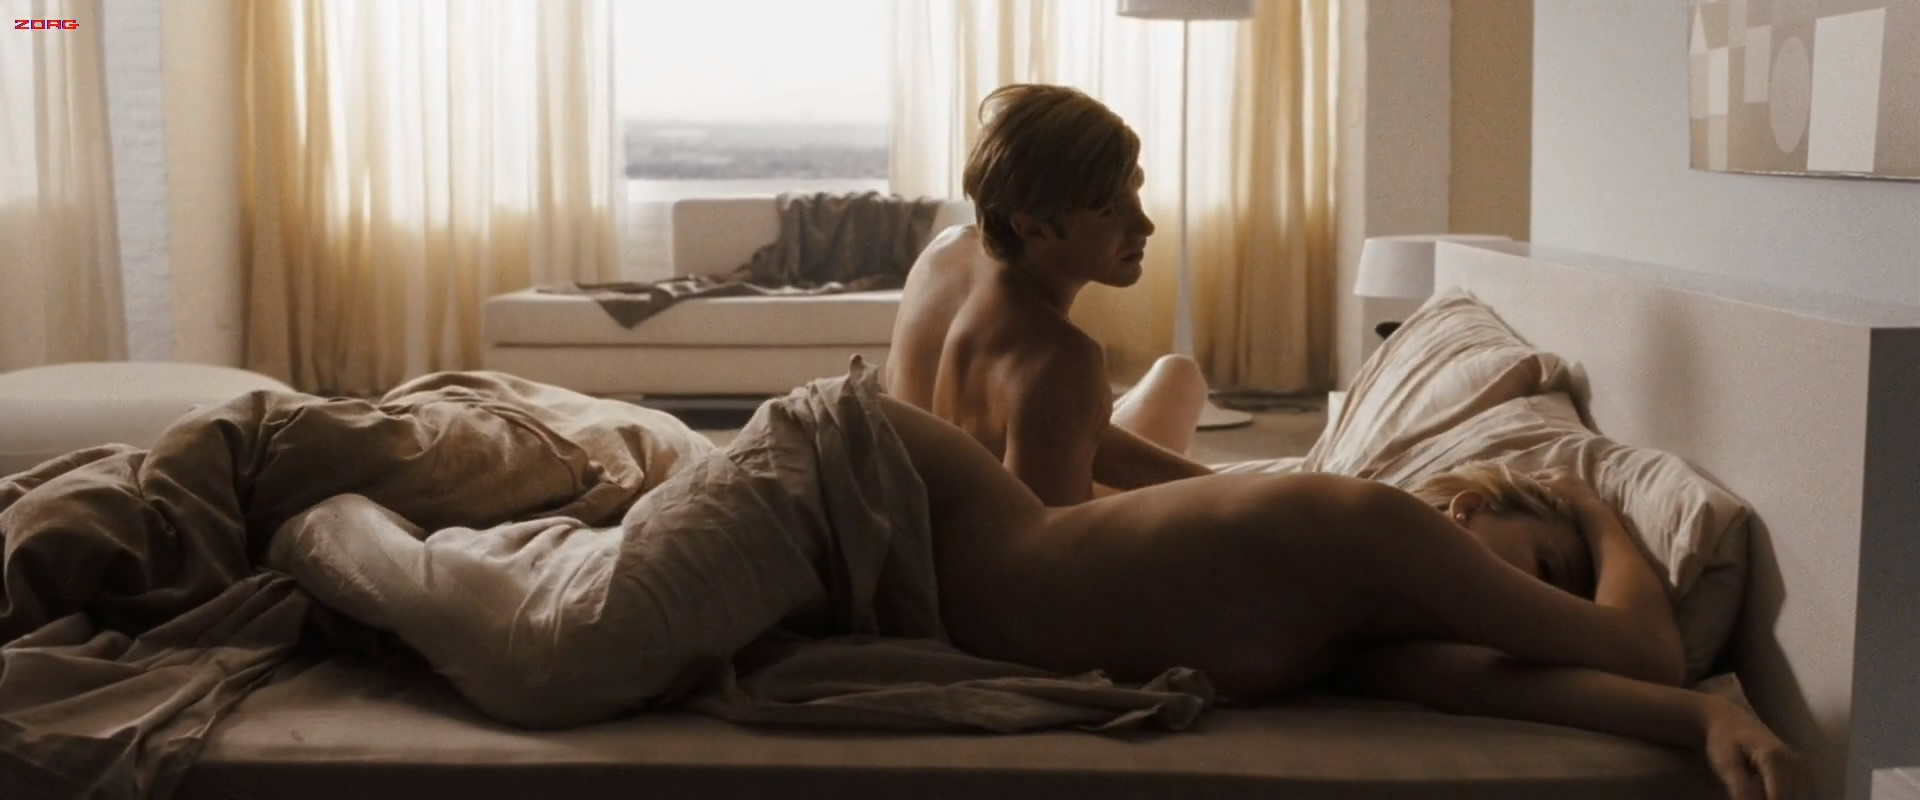 pounded out nude wives gifs